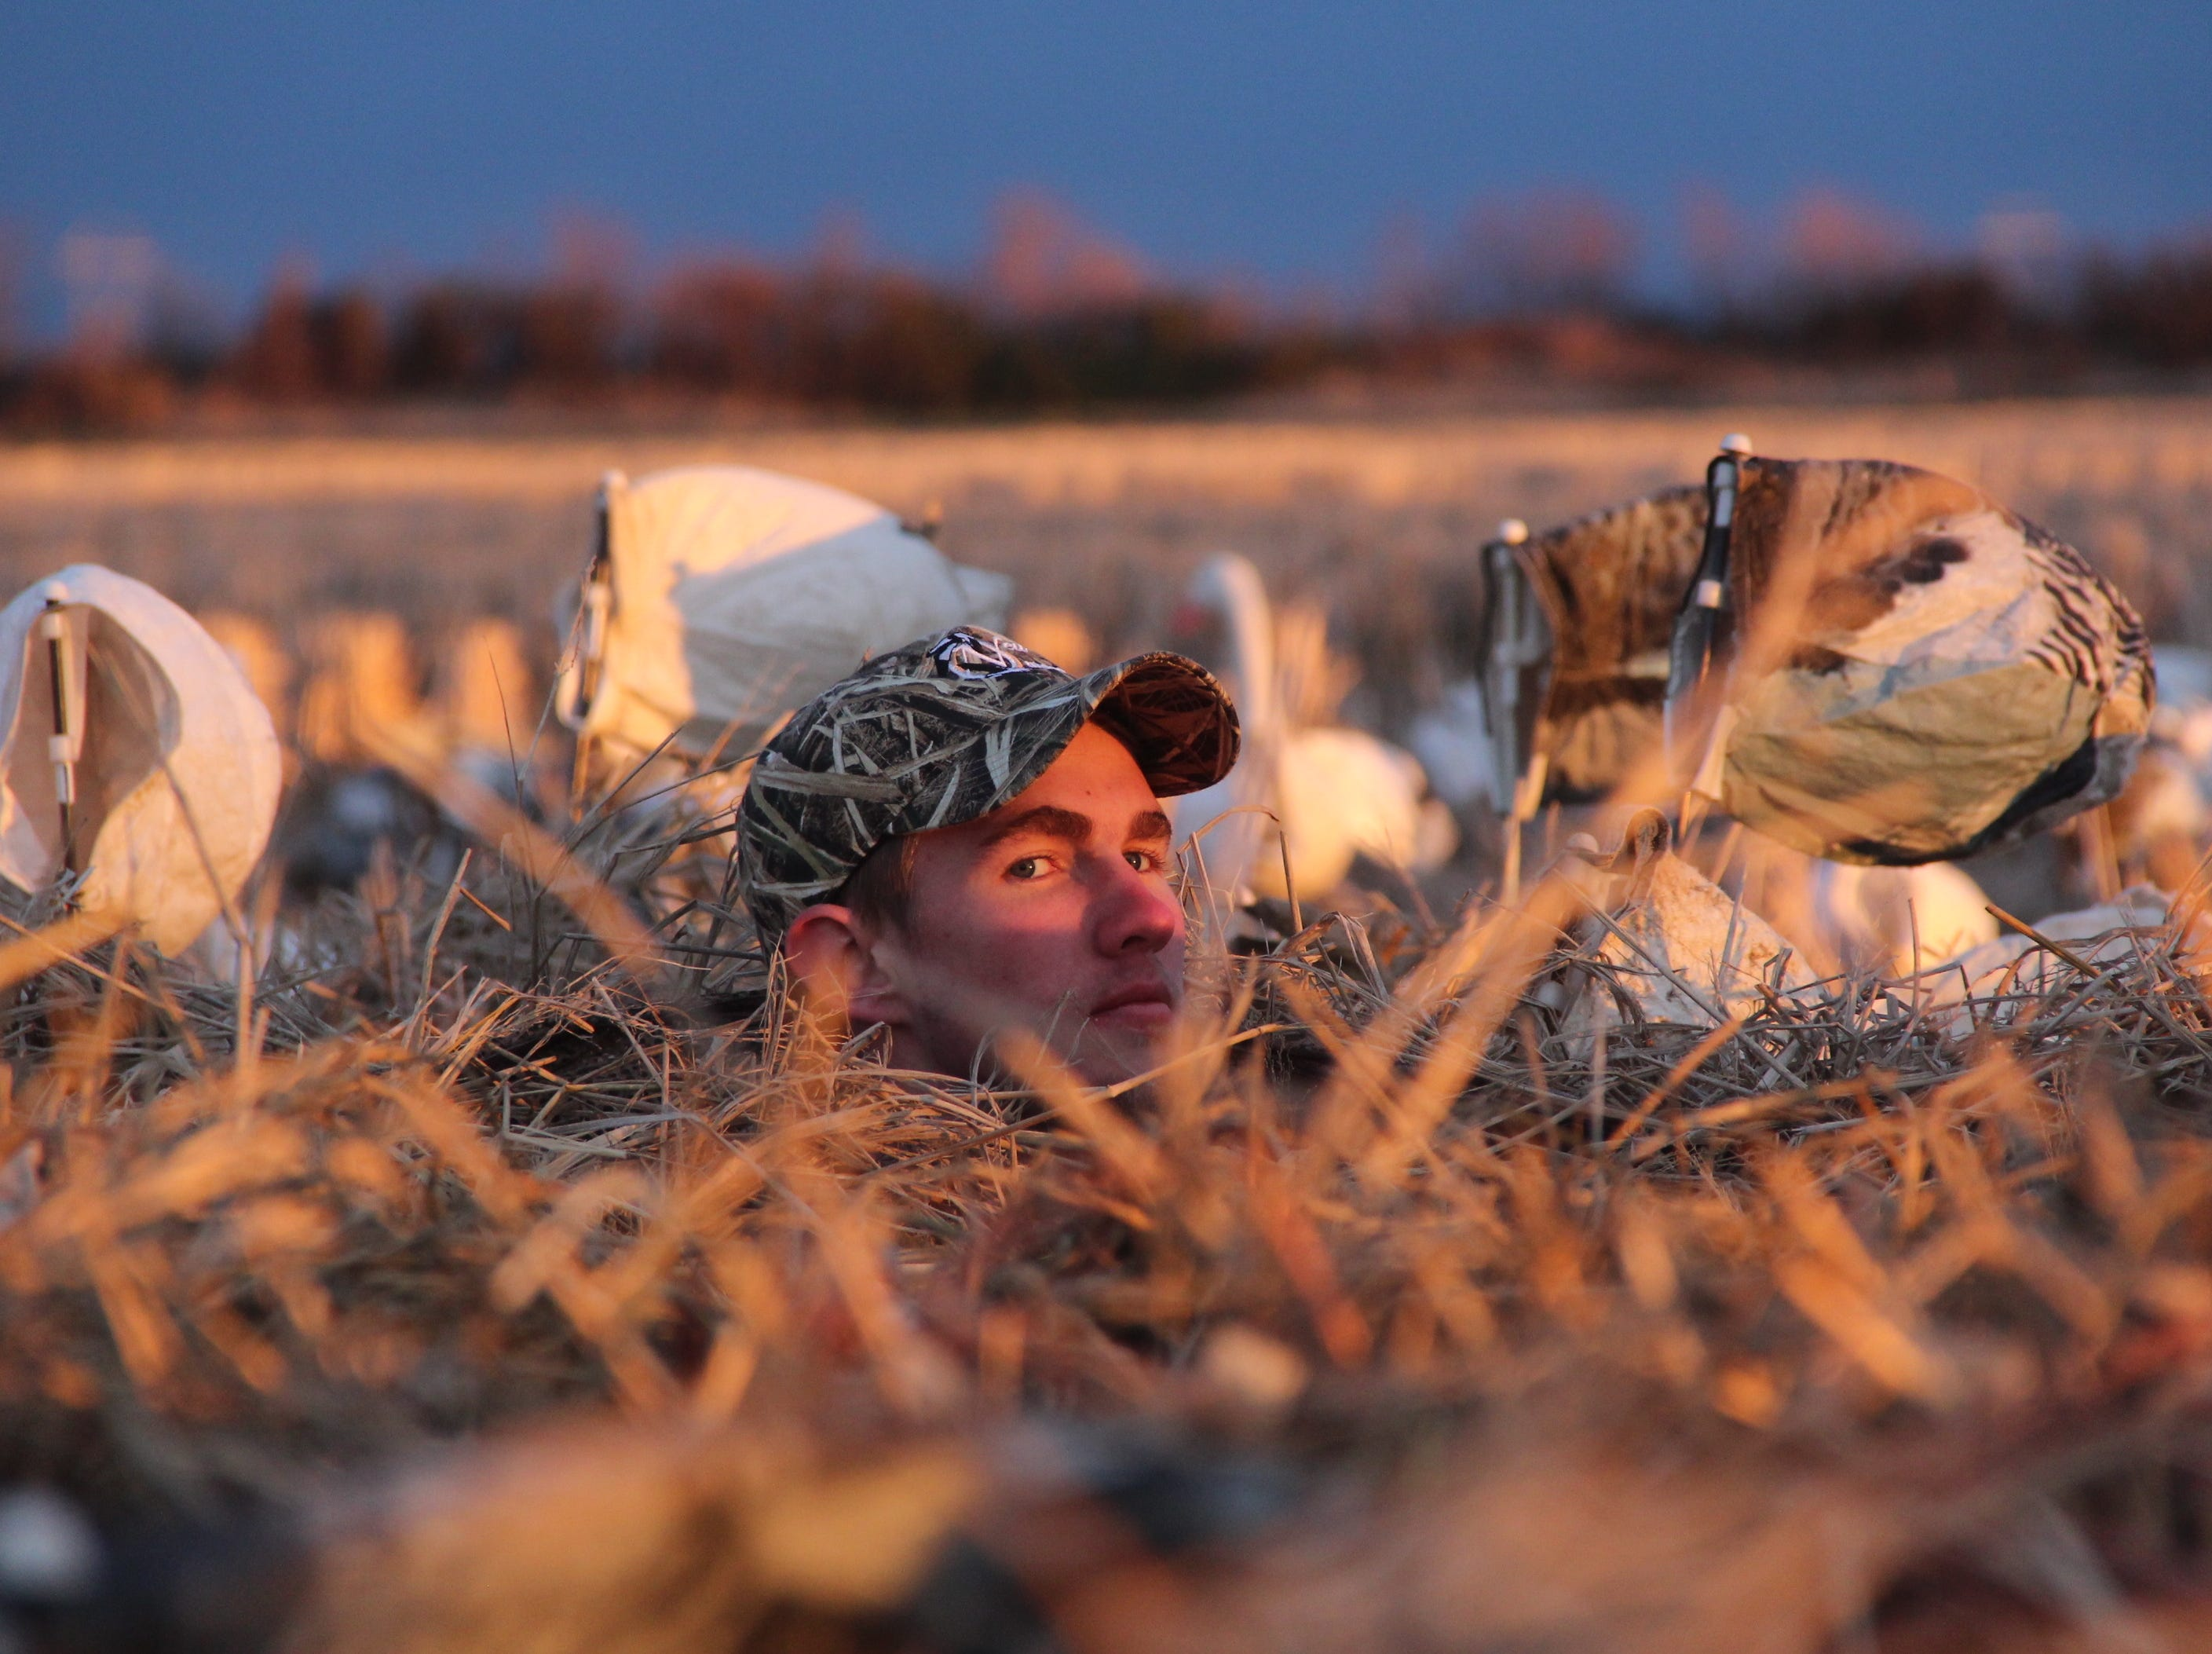 Jake Lechner looks out from a layout blind shortly after sunrise.